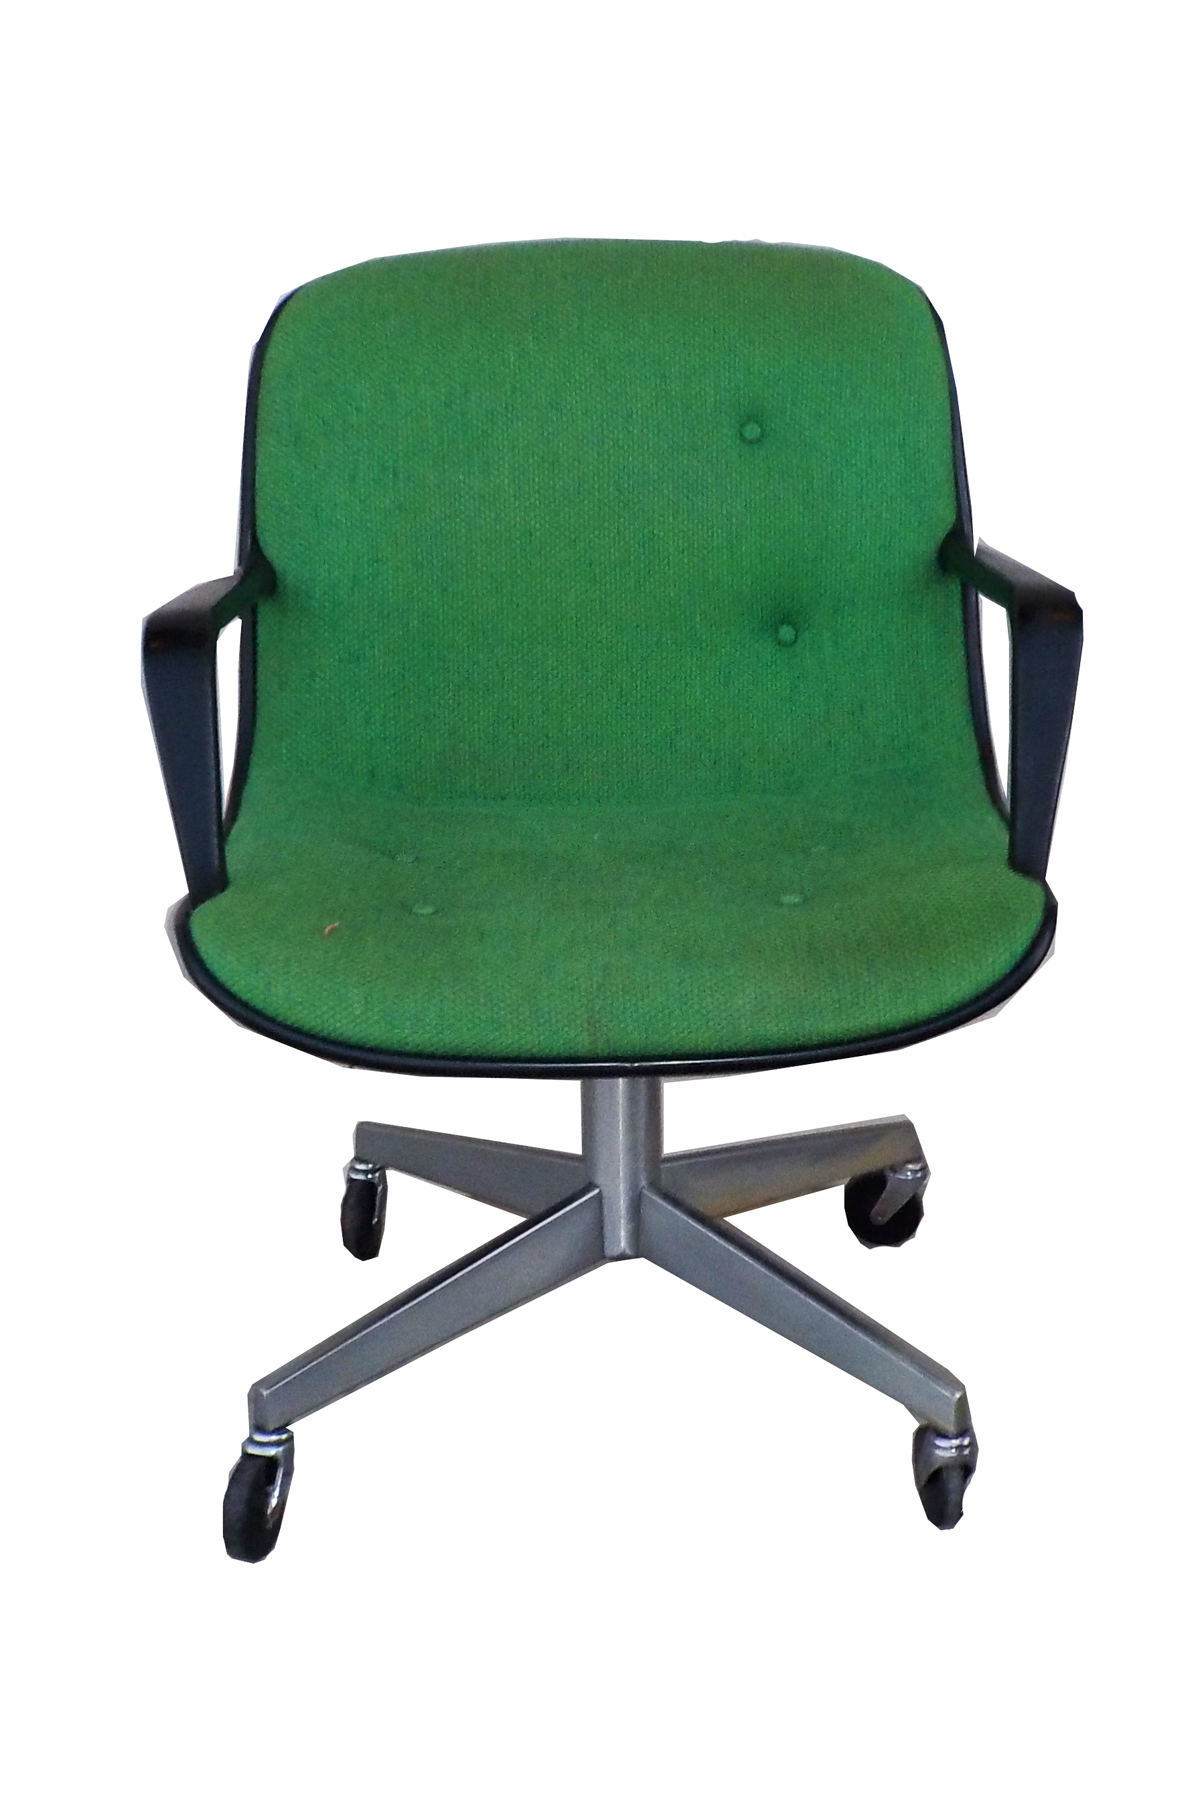 mid-century modern steelcase vintage green office chair | chairish